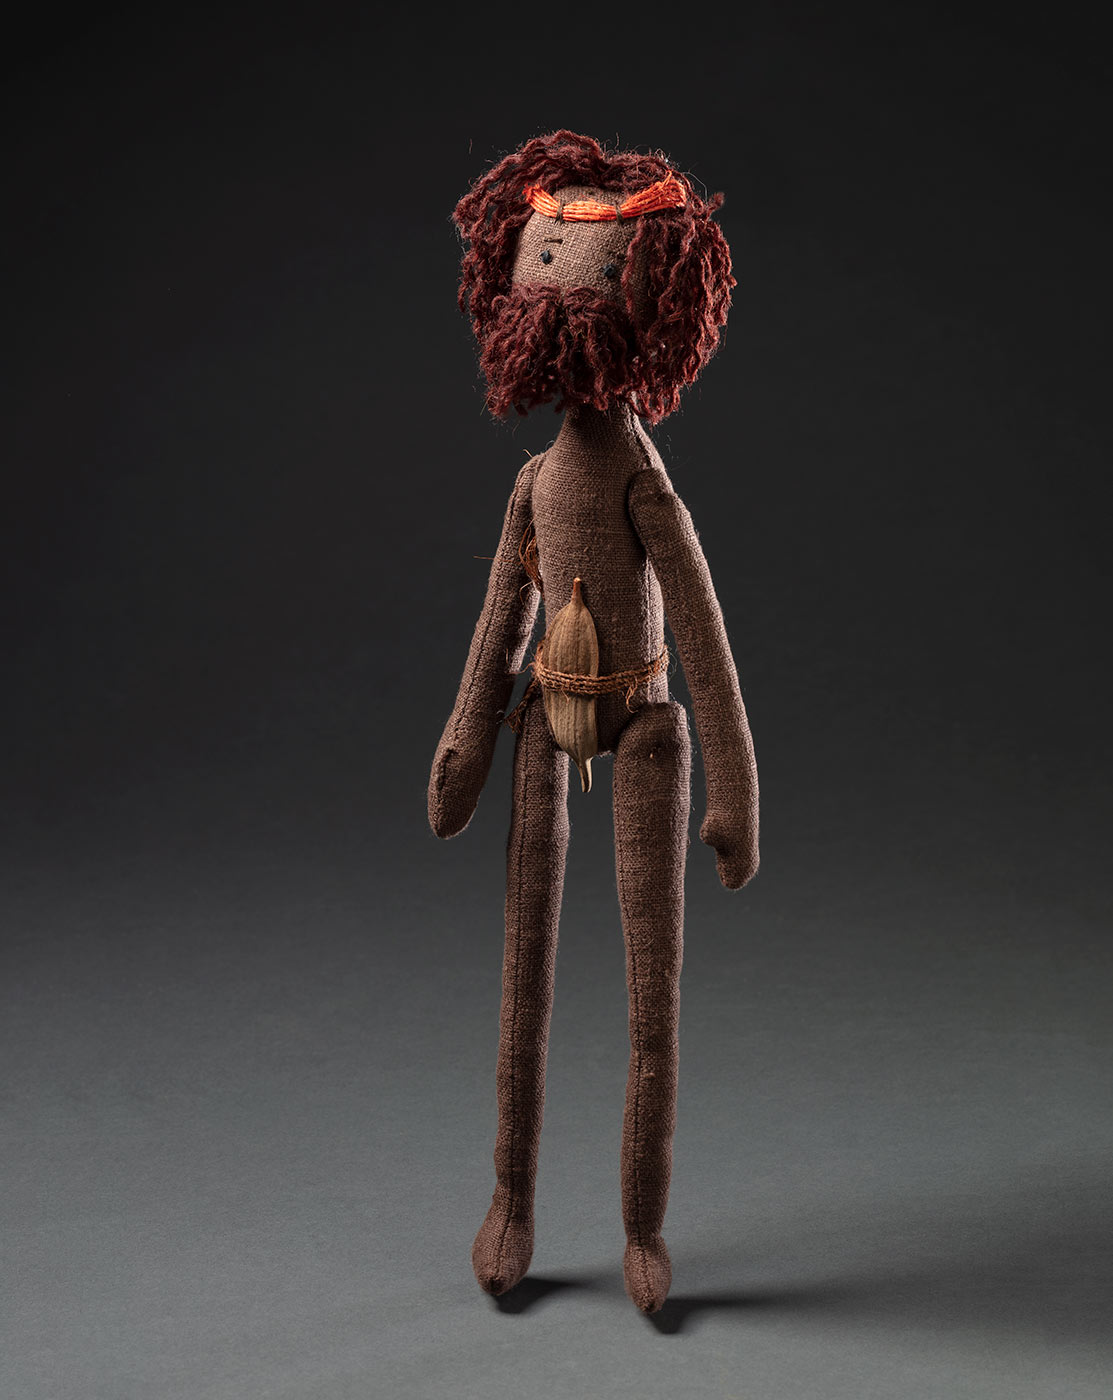 A soft sculpture based on ancestor creator spirit Toonku, a male figure. He has a cloth body, wearing a belt and leaf around waist and a brown wool beard. He also has a red string headband around his brown wool hair on his head and has stitched black eyes. - click to view larger image